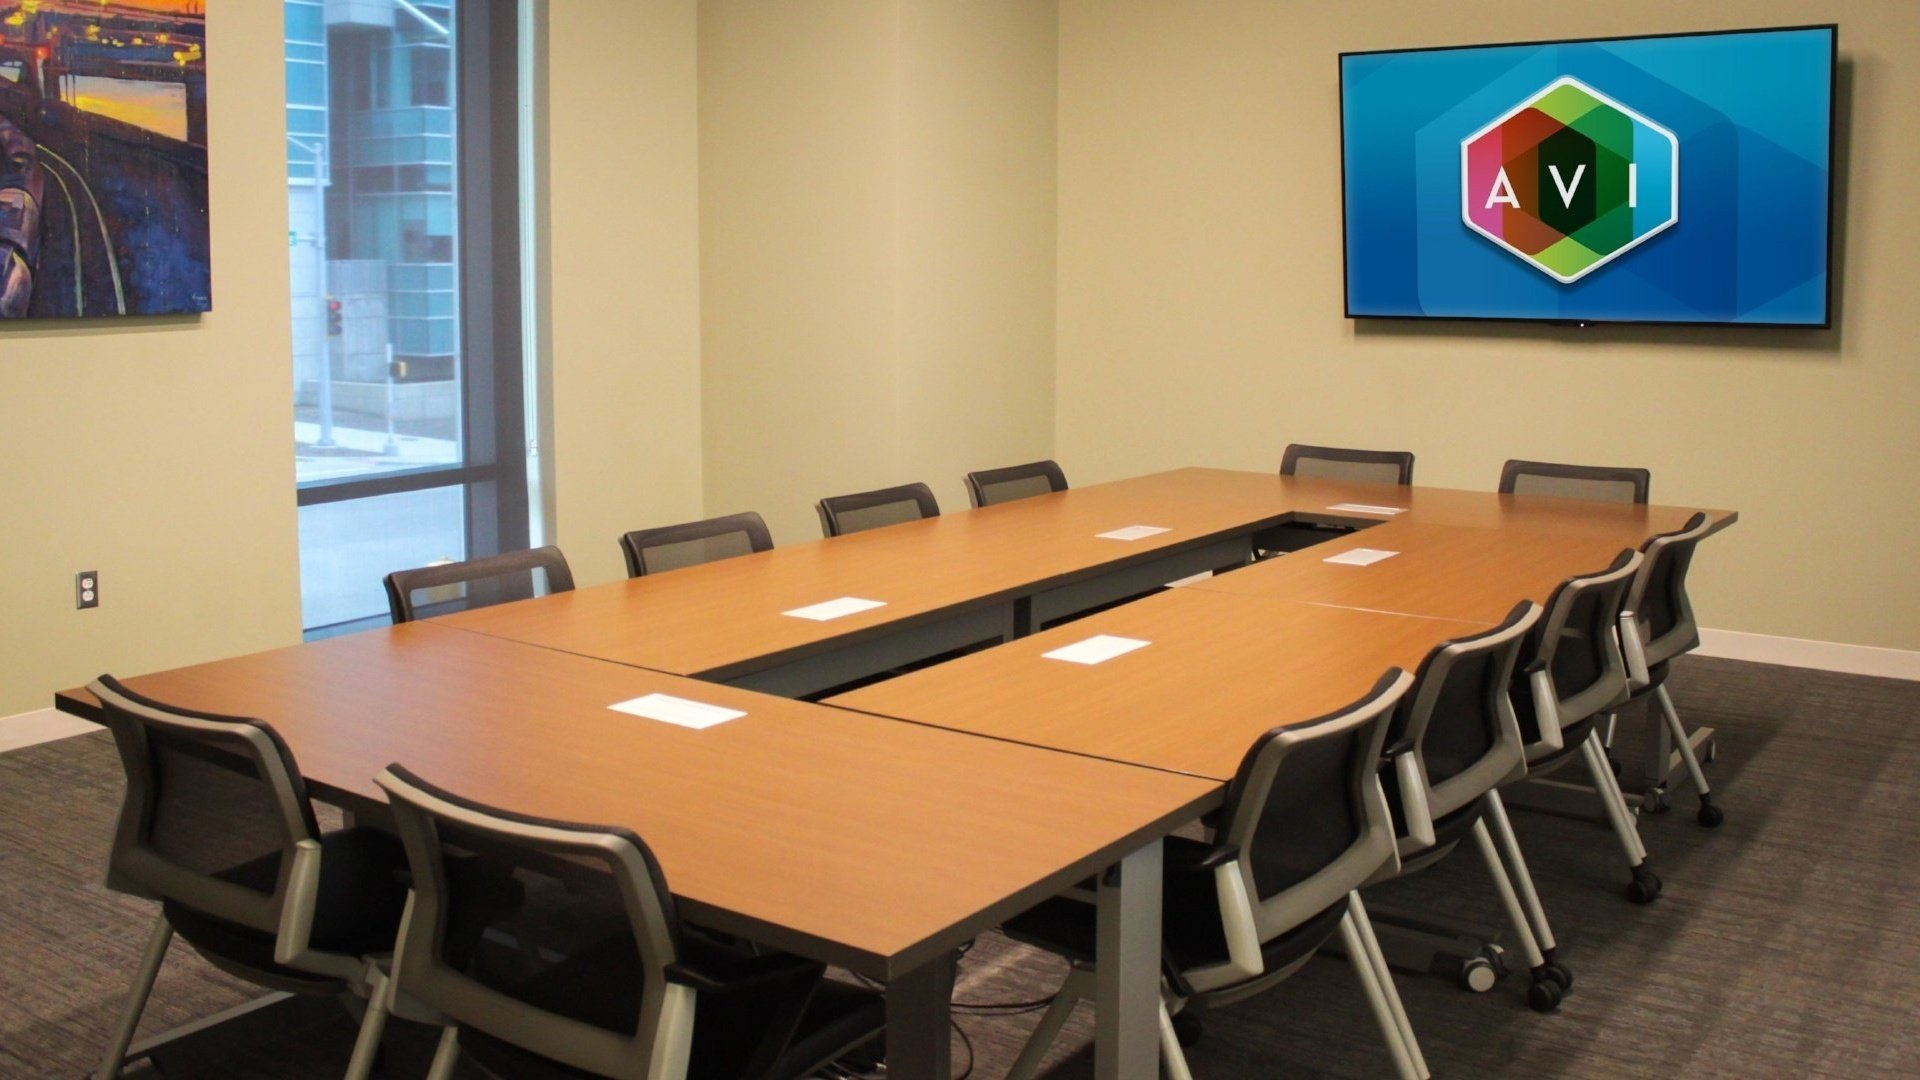 audiovisual-boardroom_university-of-kansas-hospital_01